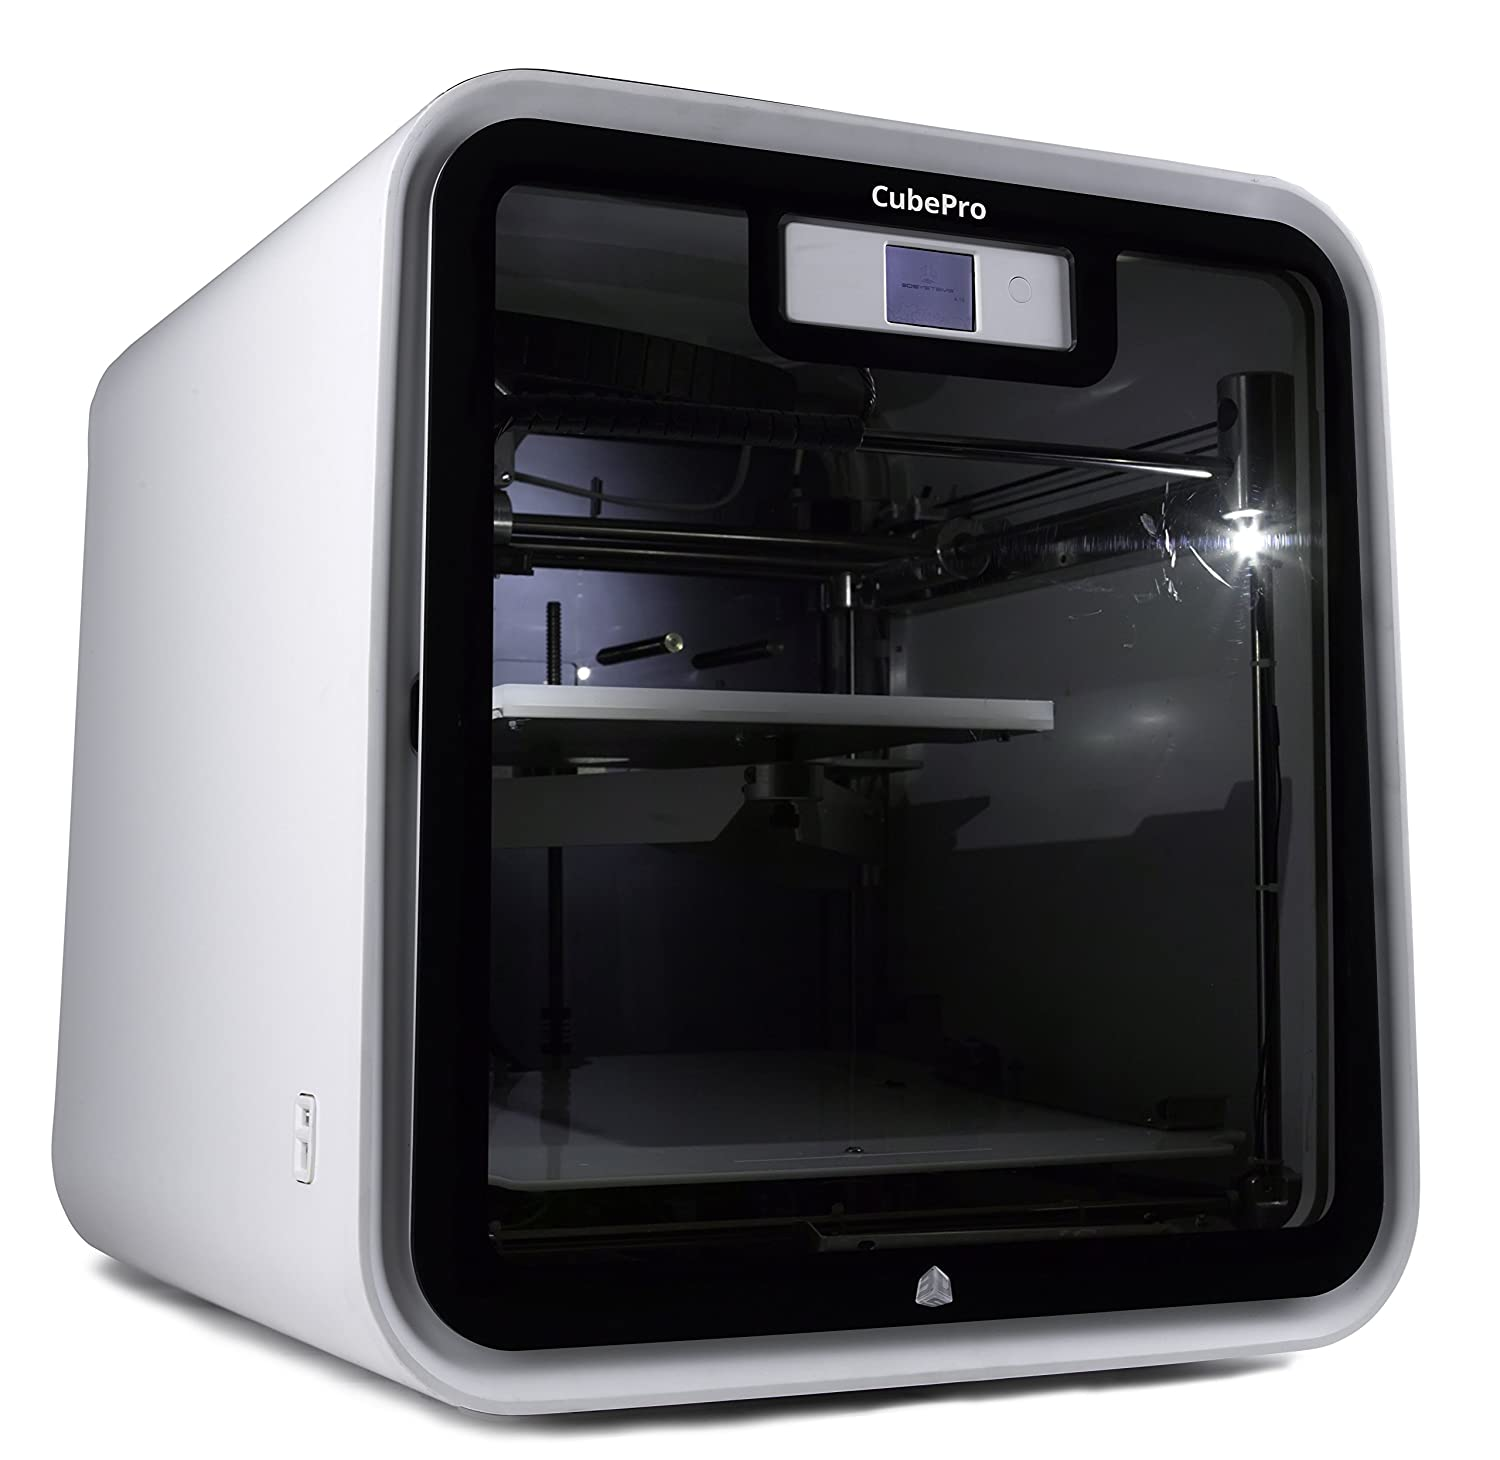 3D Systems 401733 CubePro Impresora 3D: Amazon.es: Industria ...